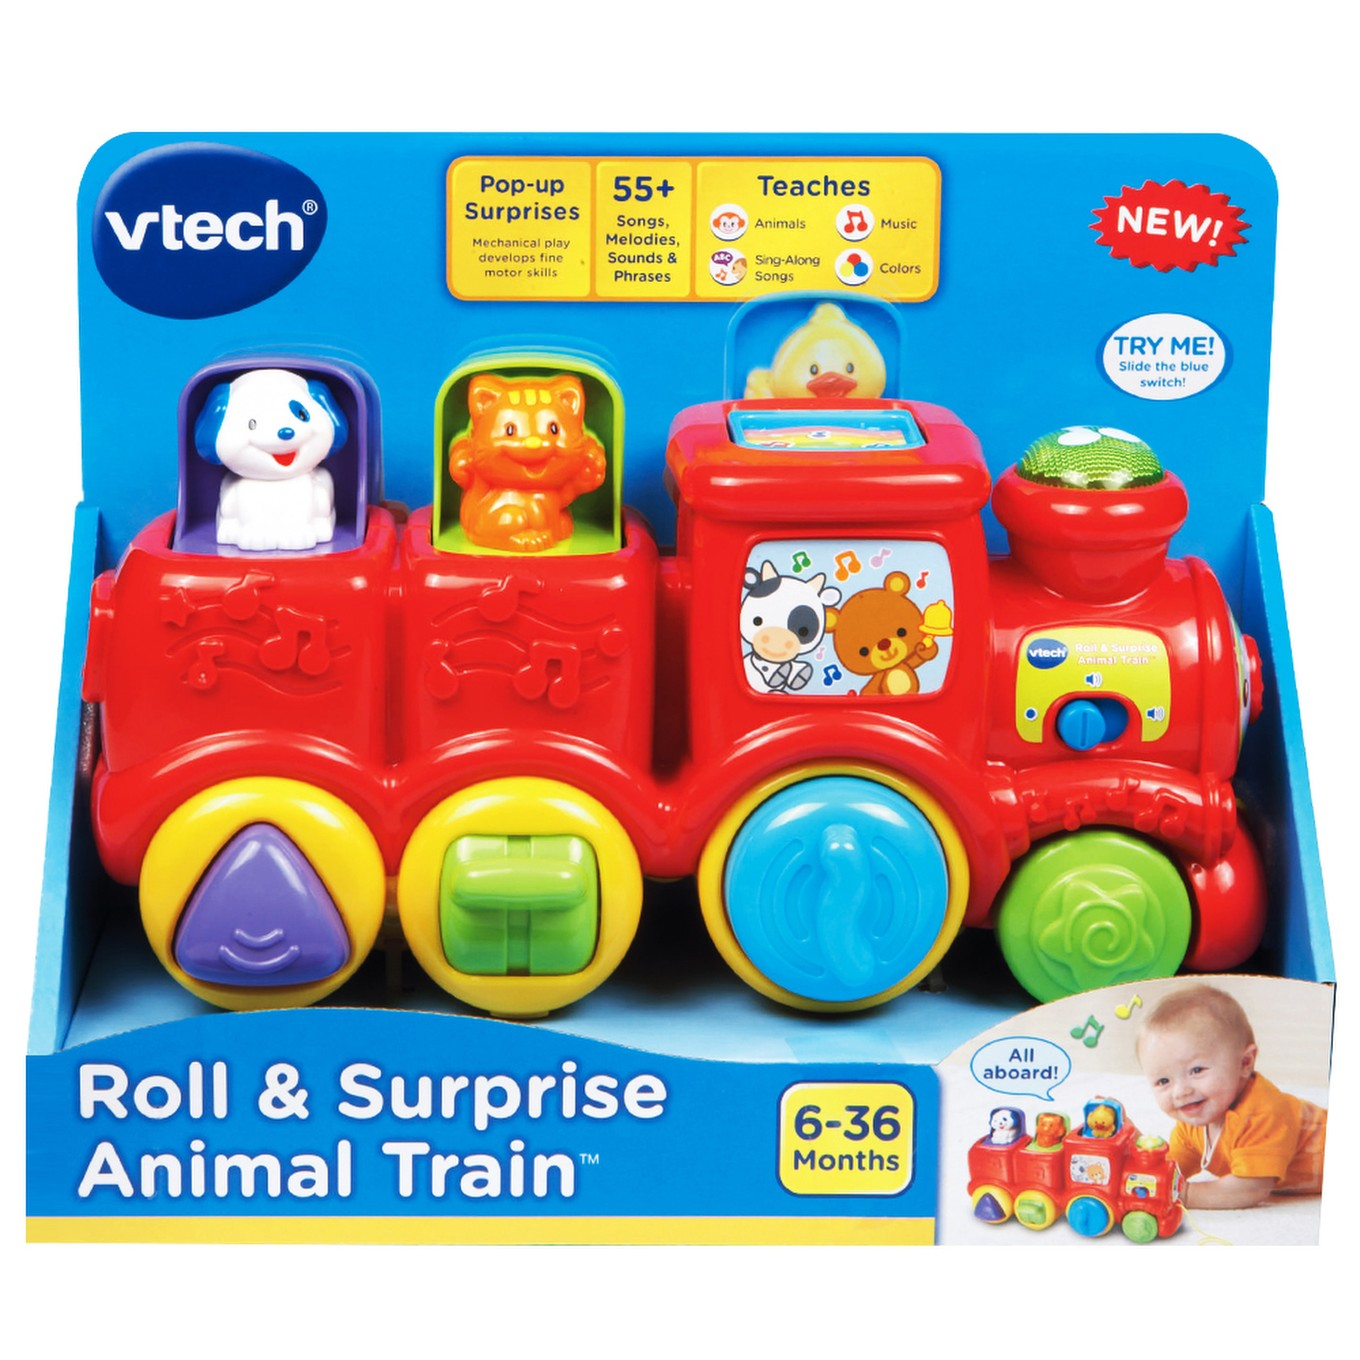 Roll & Surprise Animal Train